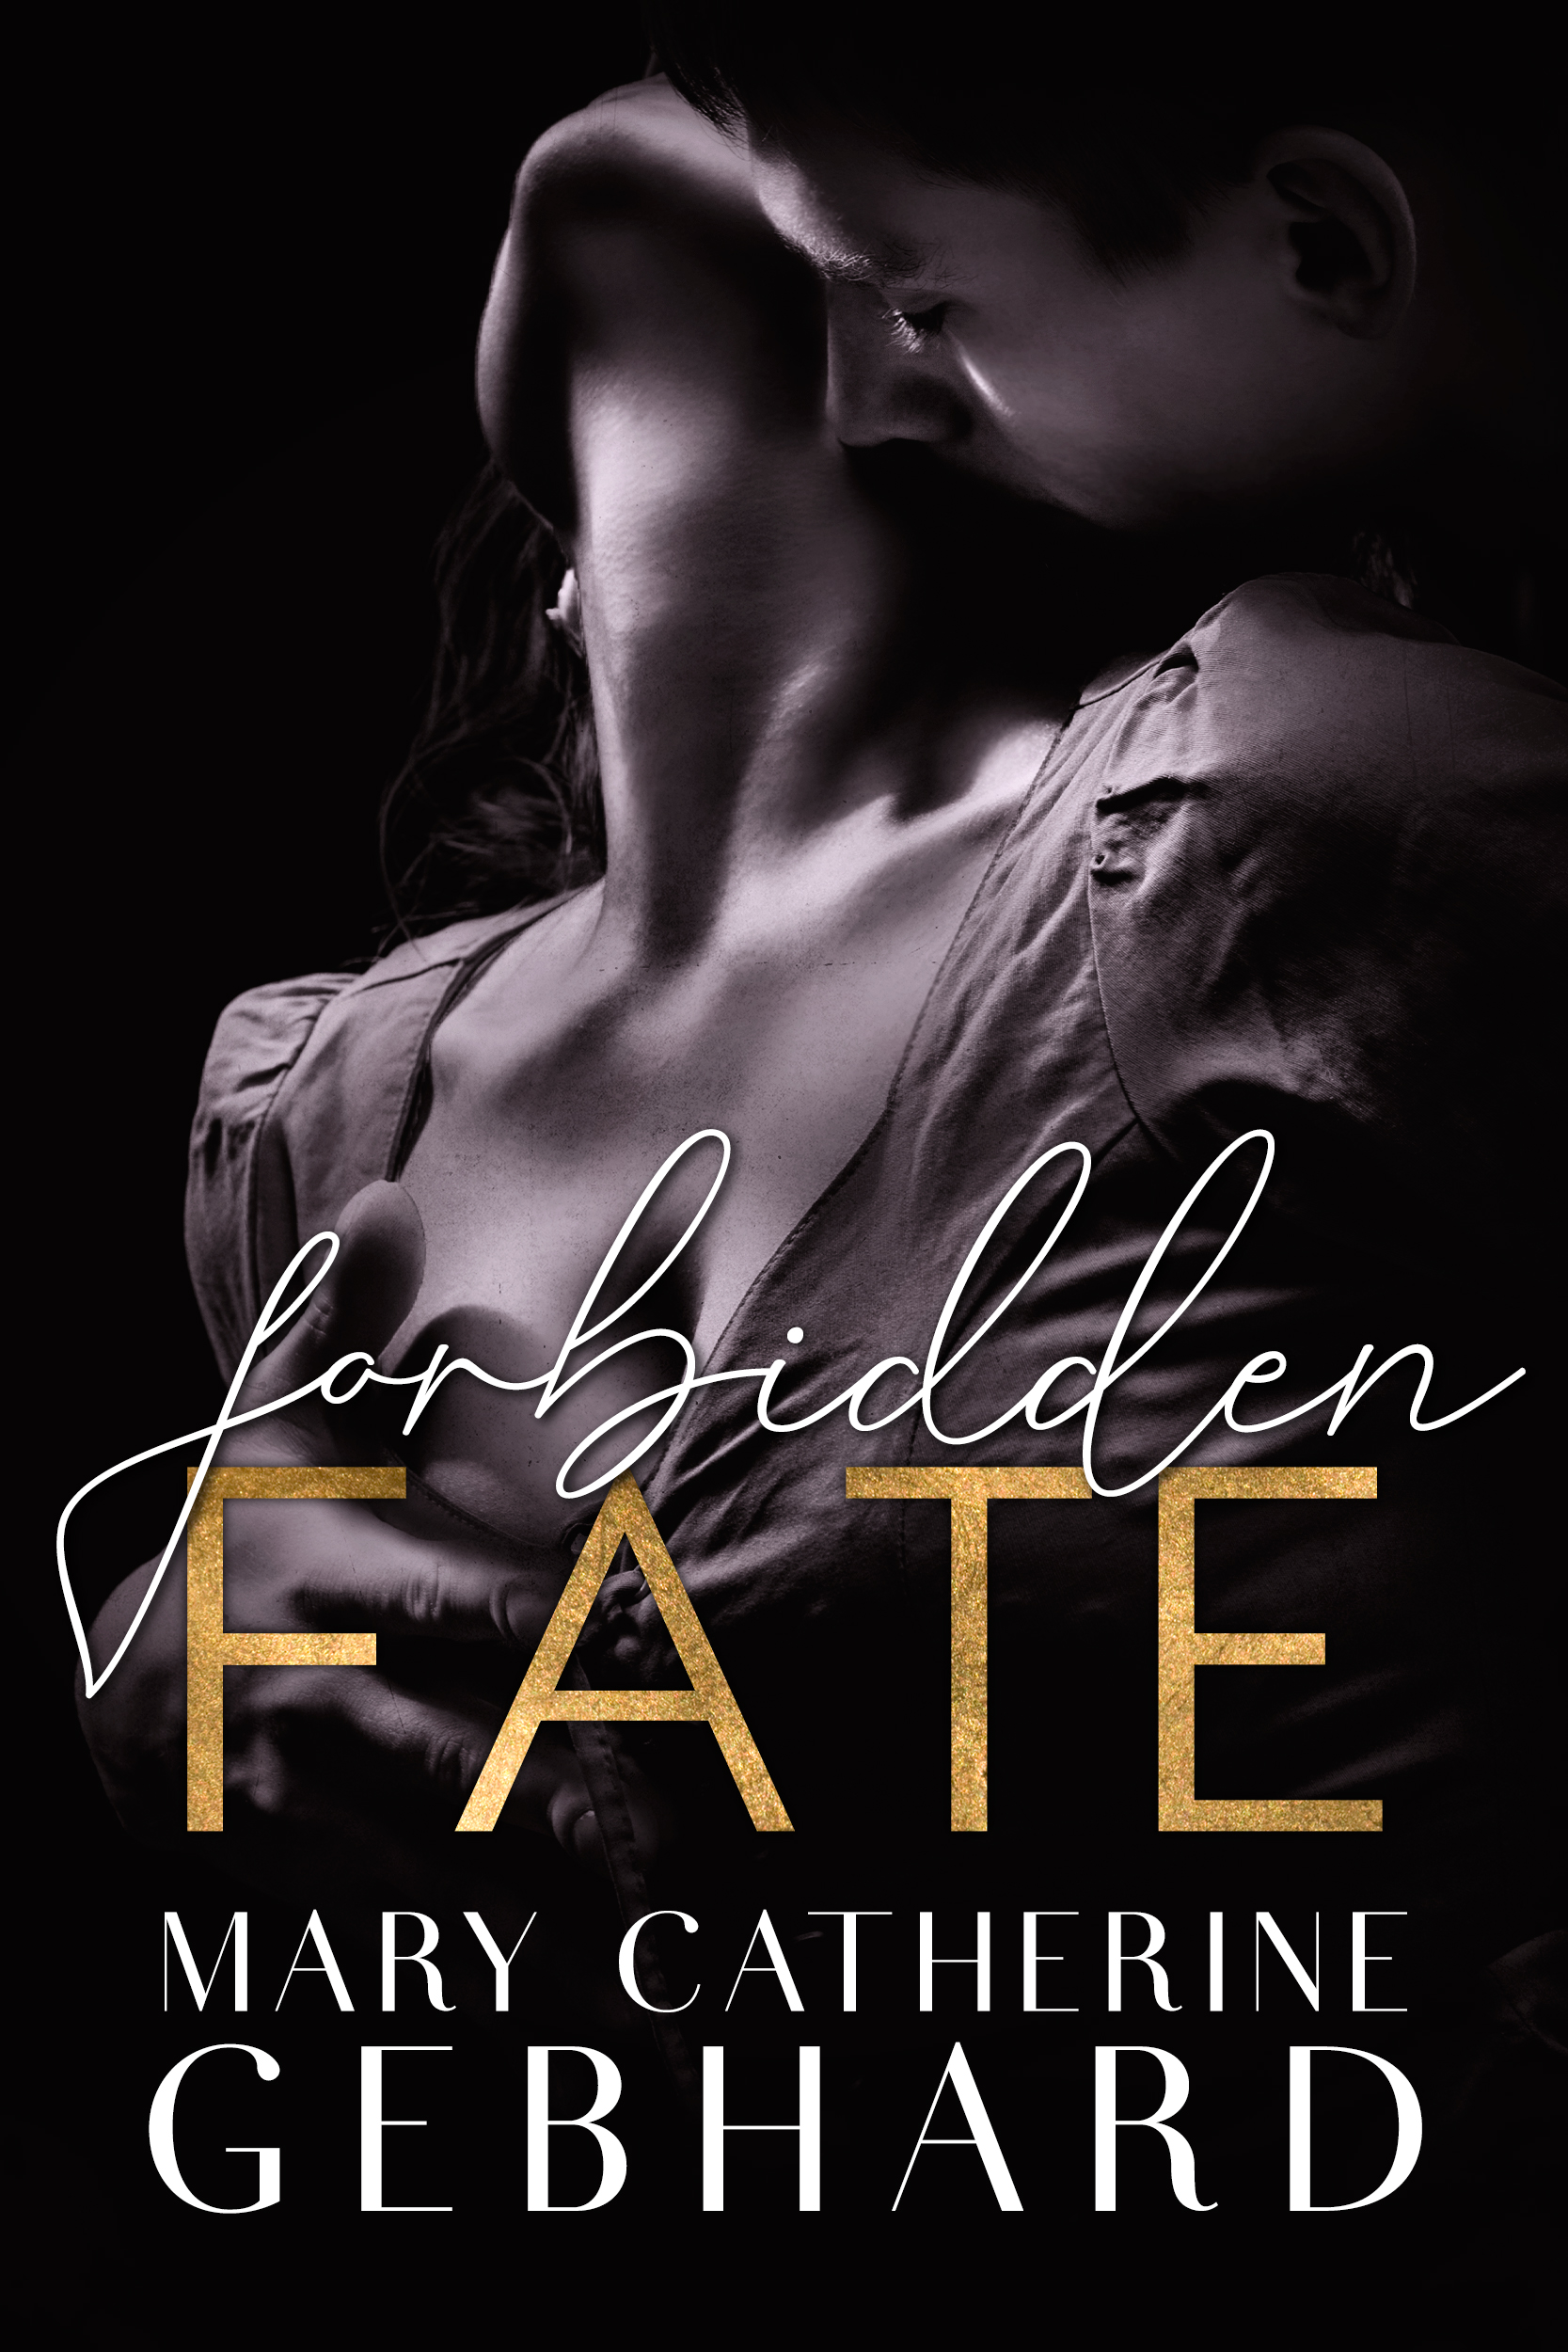 Forbidden Fate (Crowne Point #3) by Mary Catherine Gebhard